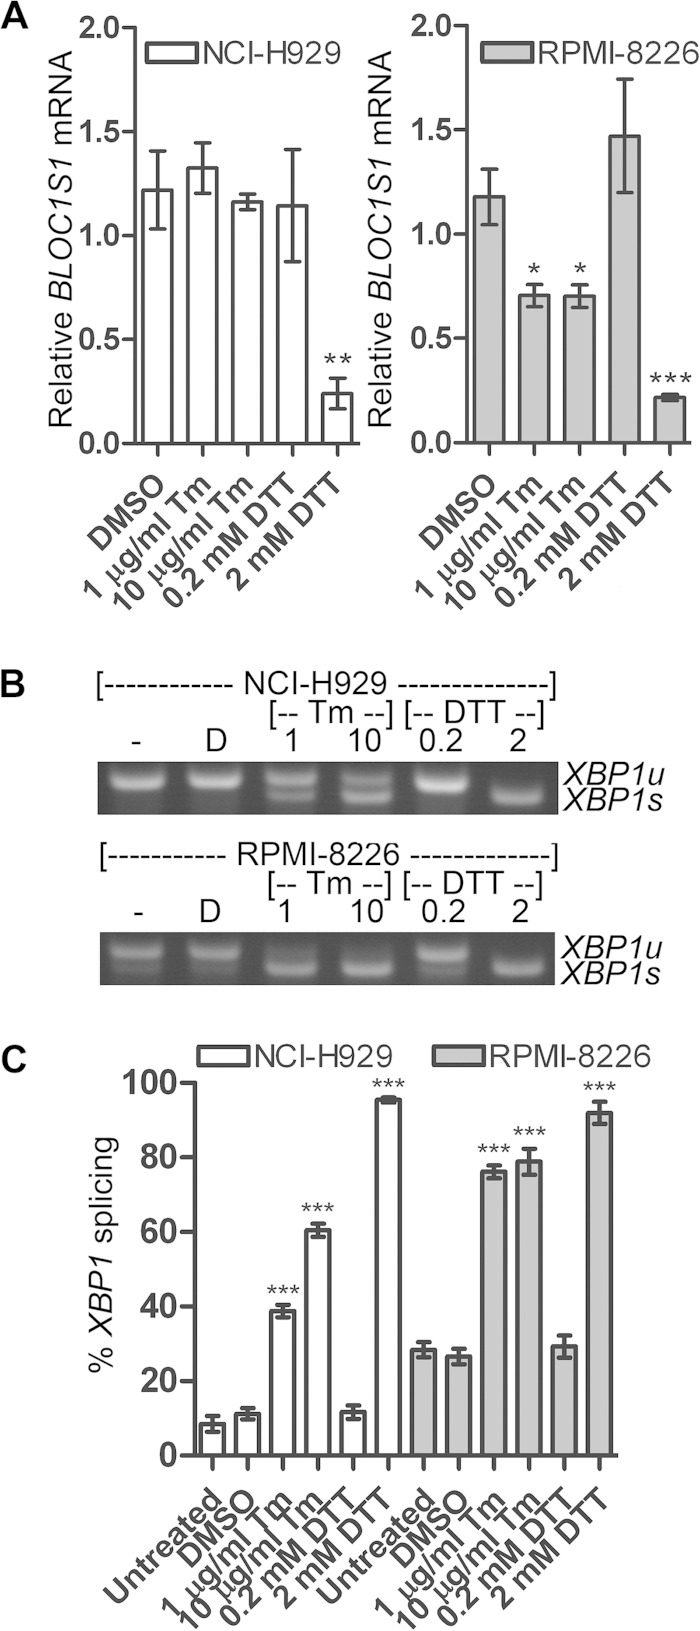 Degradation of BLOC1S1 is stressor dependent. (A) Relative quantities of BLOC1S1 in NCI-H929 and RPMI-8226 cells treated with the indicated stressors for 4 h. The mRNA level was measured by SYBR green qPCR and normalized to GAPDH and is shown relative to untreated cells. The data are means ± SEM of three independent experiments. (B) Representative agarose gel electrophoresis of the RT-PCR product surrounding the XBP1 splice site in the samples used for panel A. (C) Quantification of percent XBP1 splicing from the gel images shown in panel B. The data are means ± SEM of three independent experiments. *, P